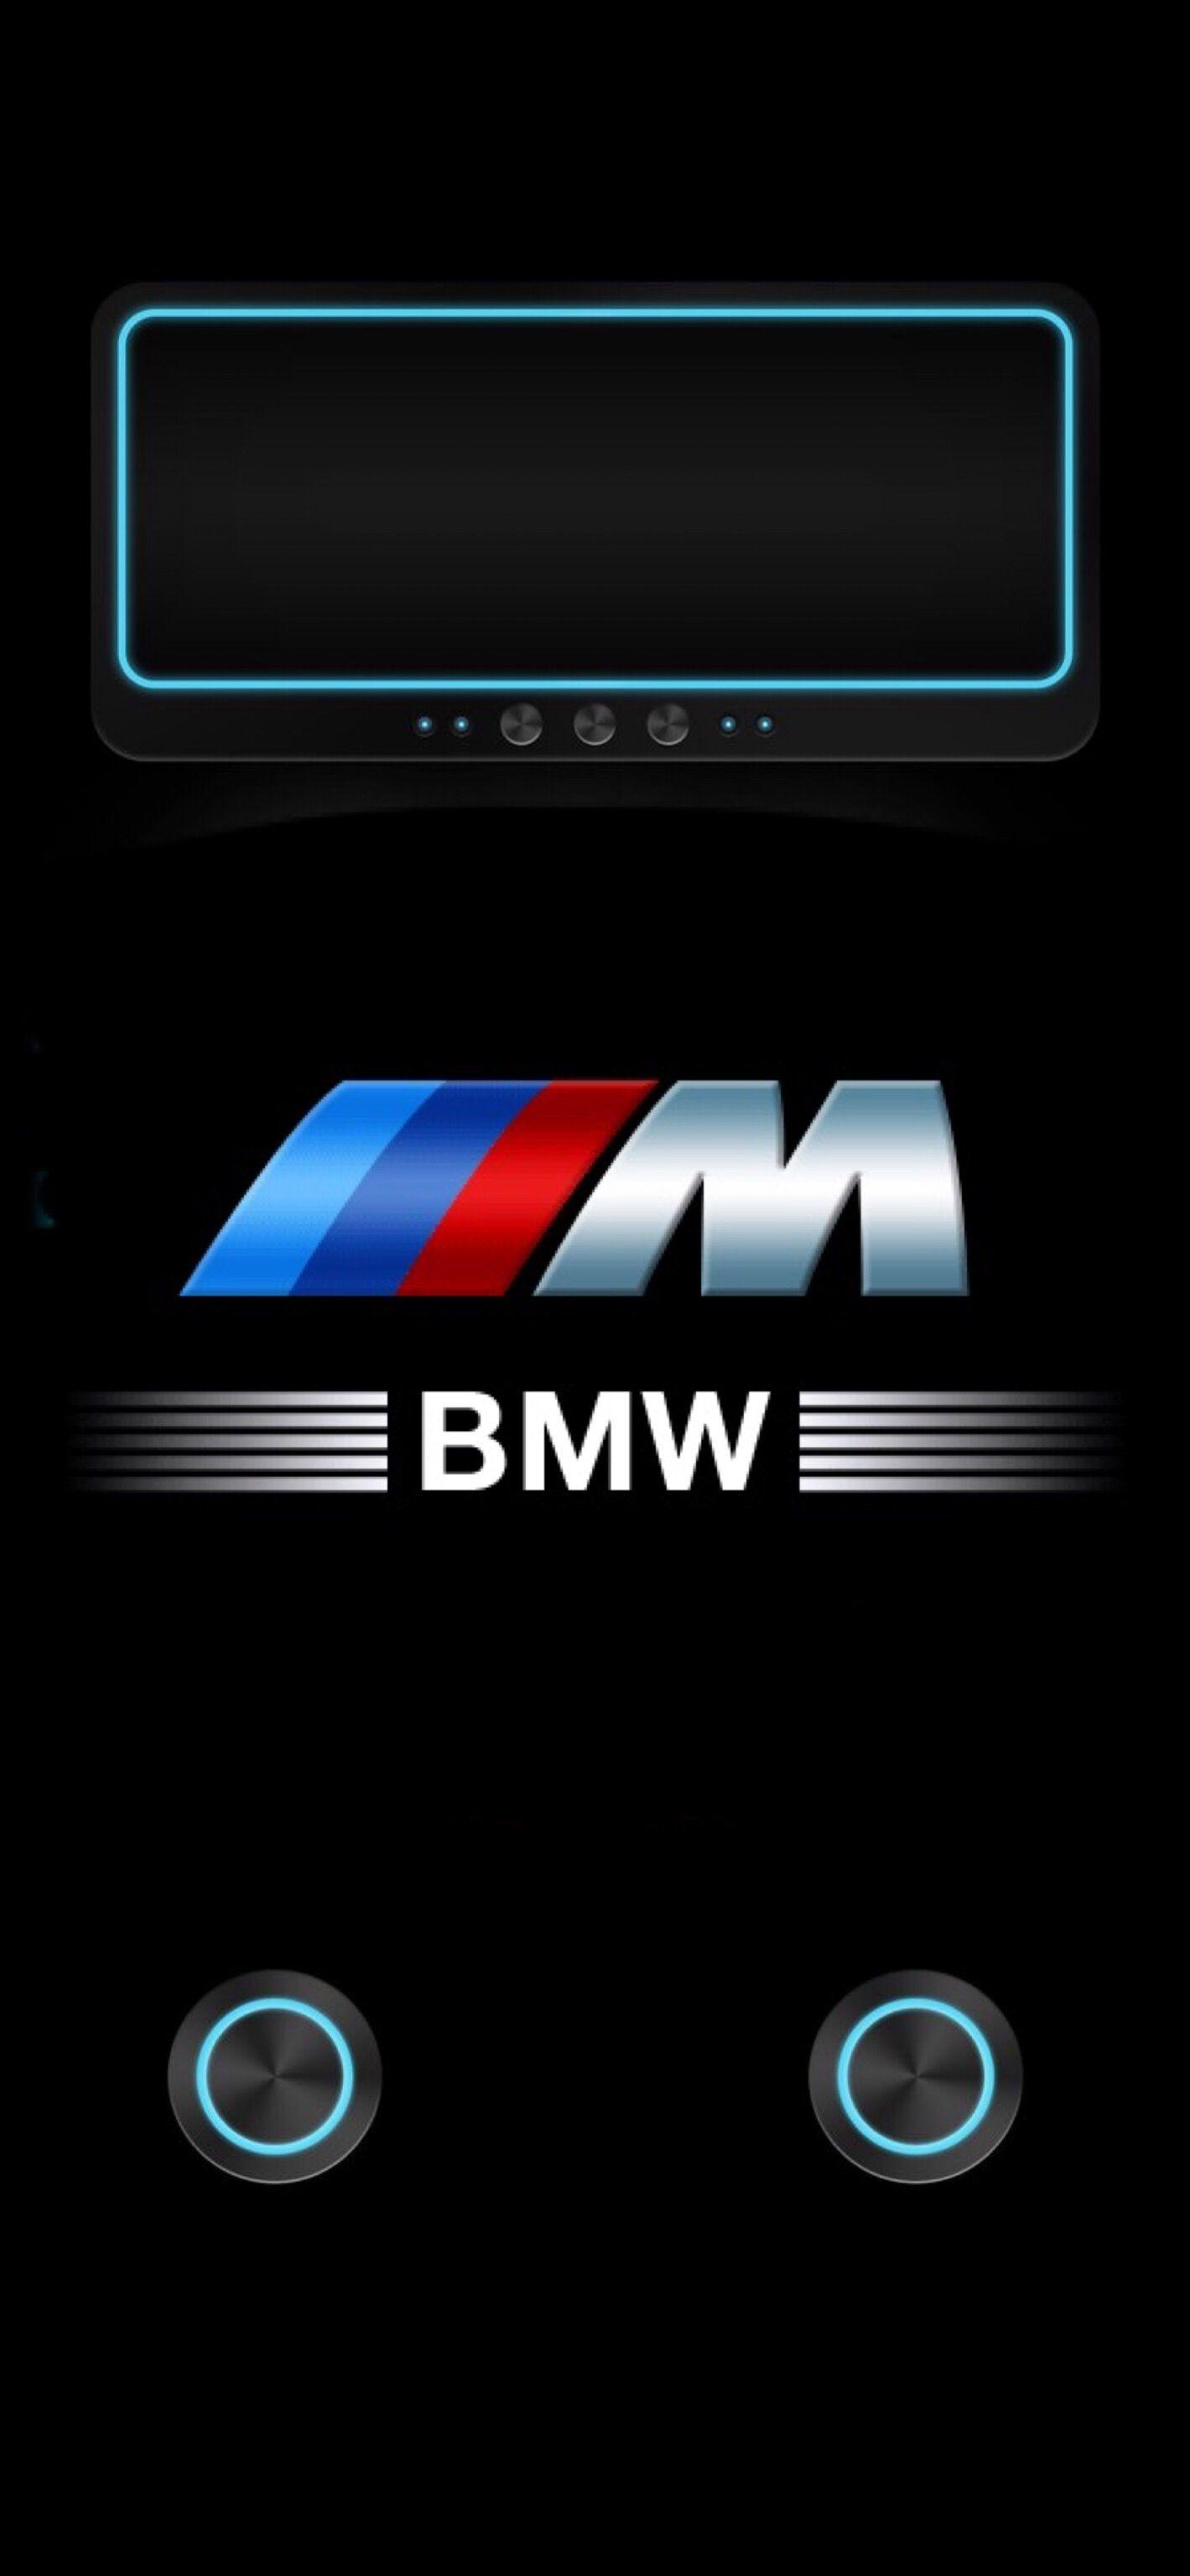 Bmw Logo Wallpaper